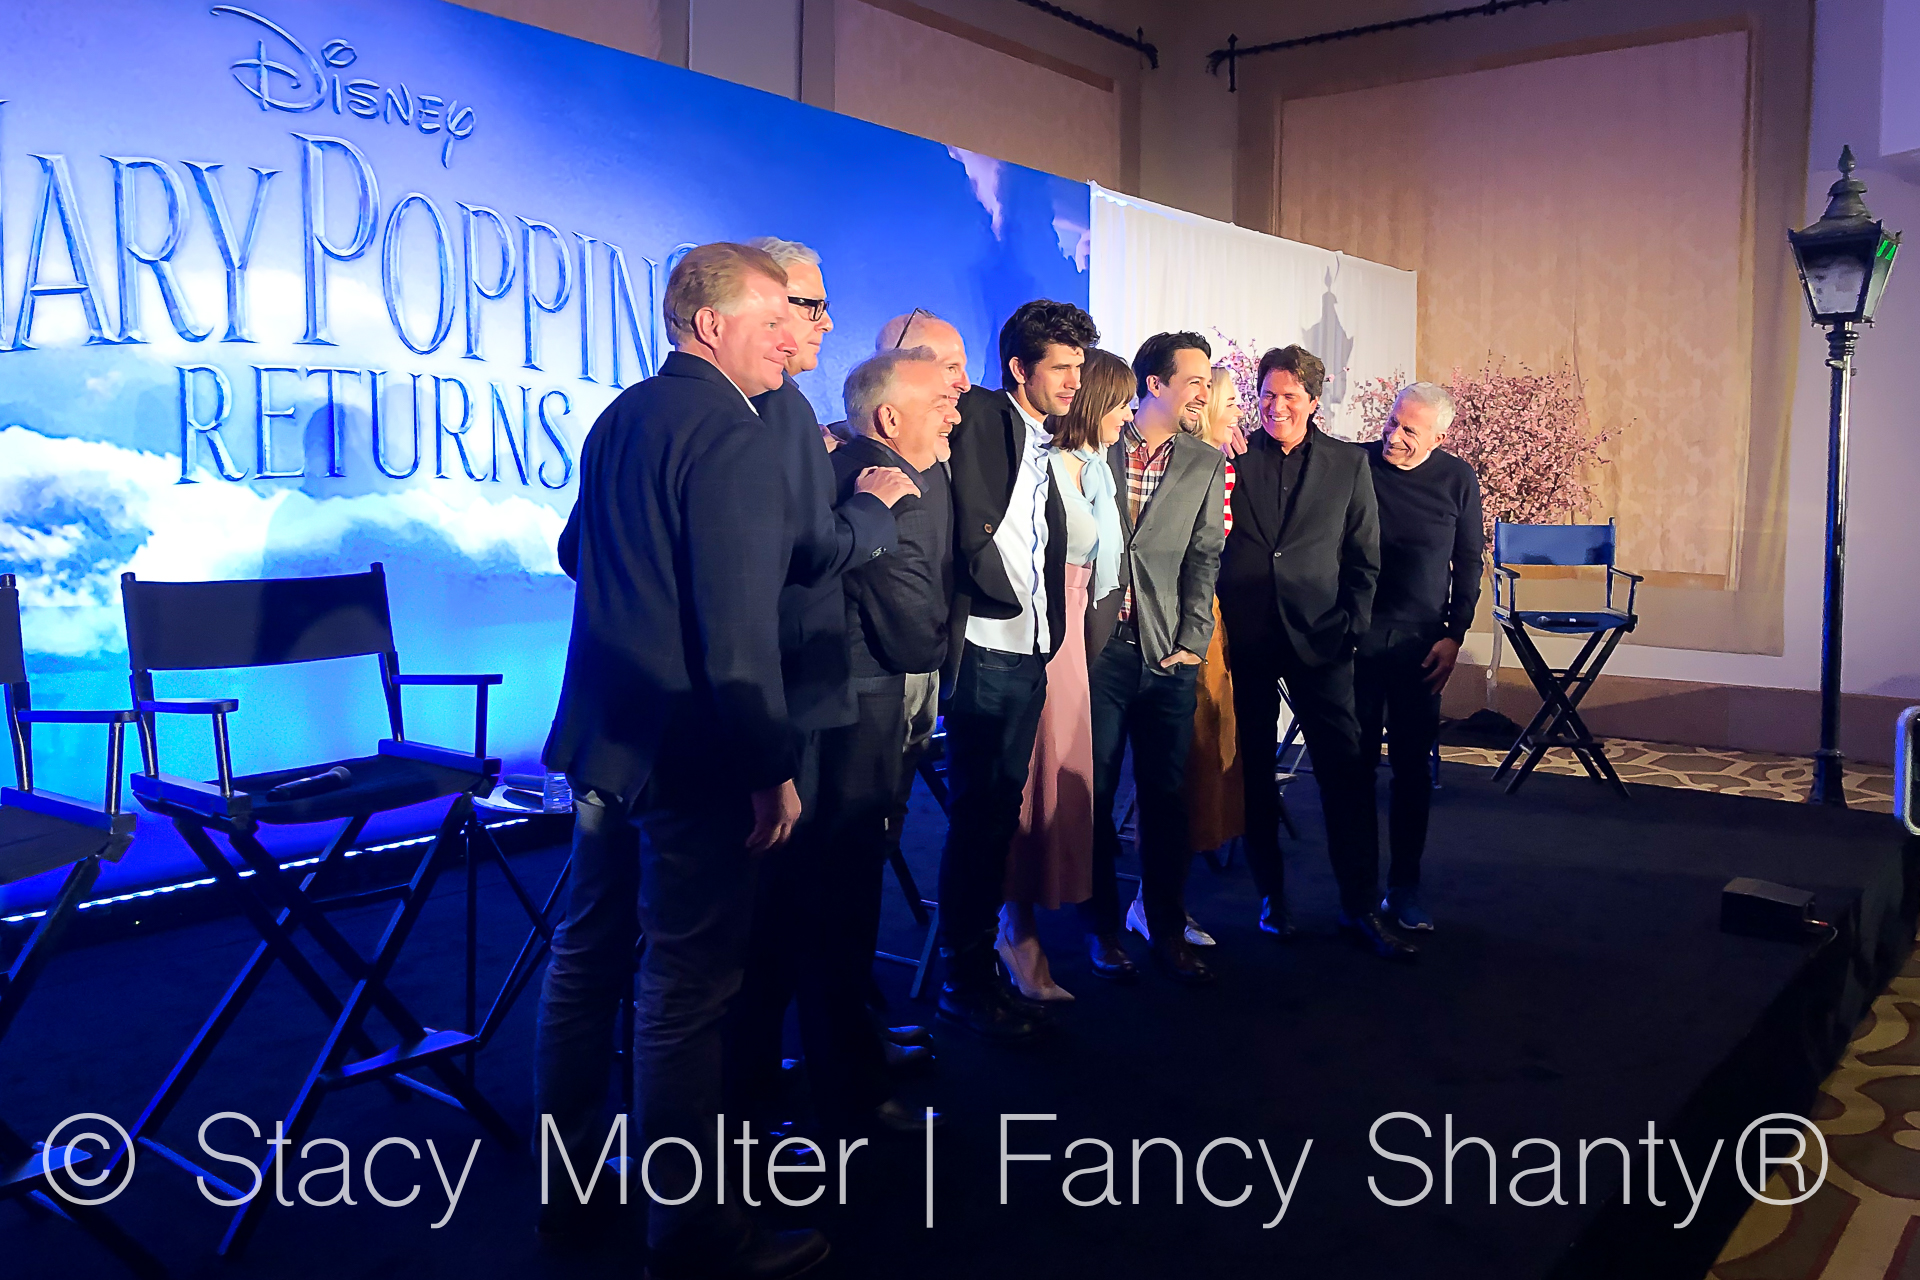 Mary Poppins Returns Cast Talks About Honoring Original Masterpiece, Witty Lyrics, Filming with Original Cast